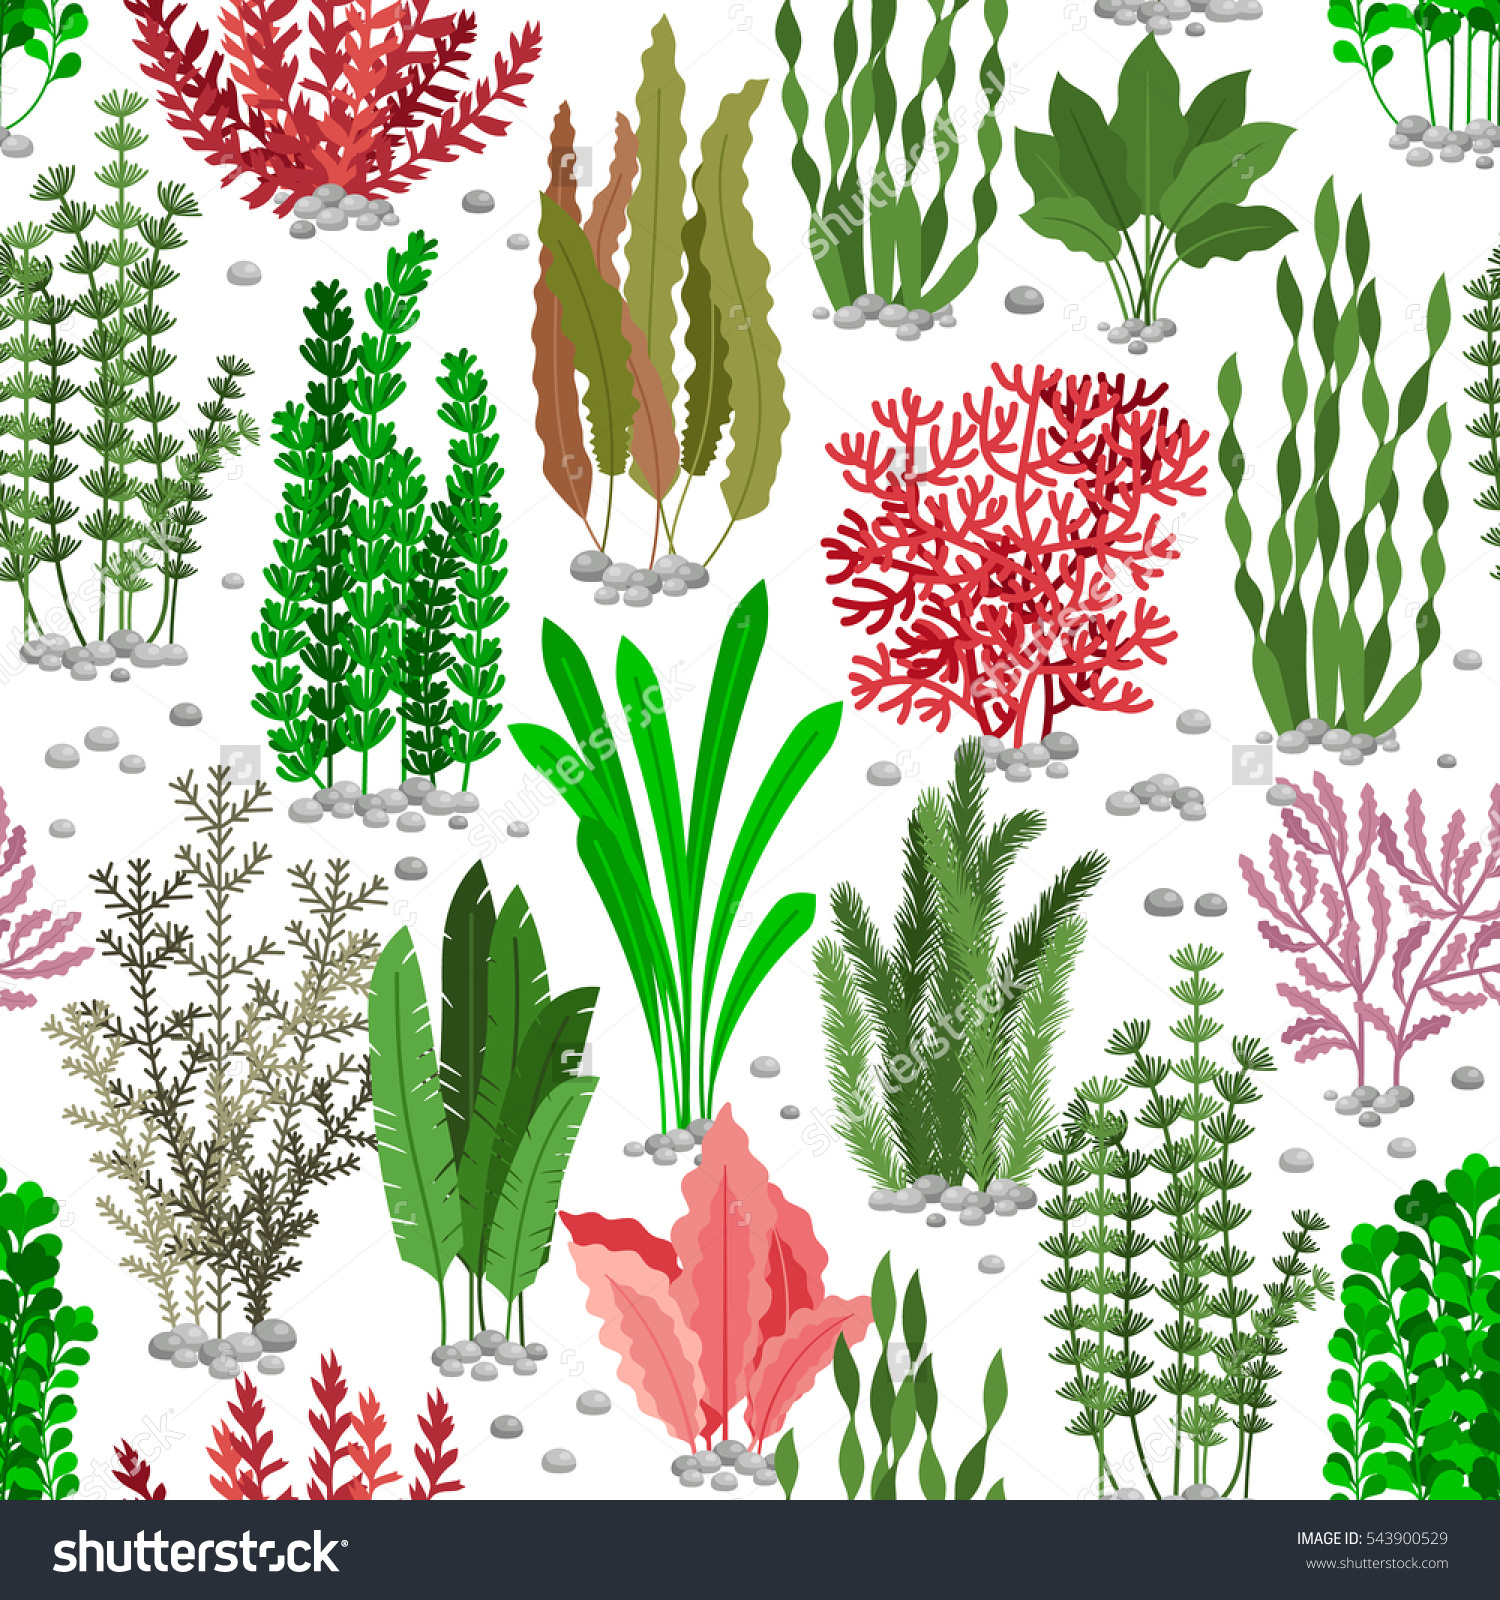 Marine Plant clipart #6, Download drawings